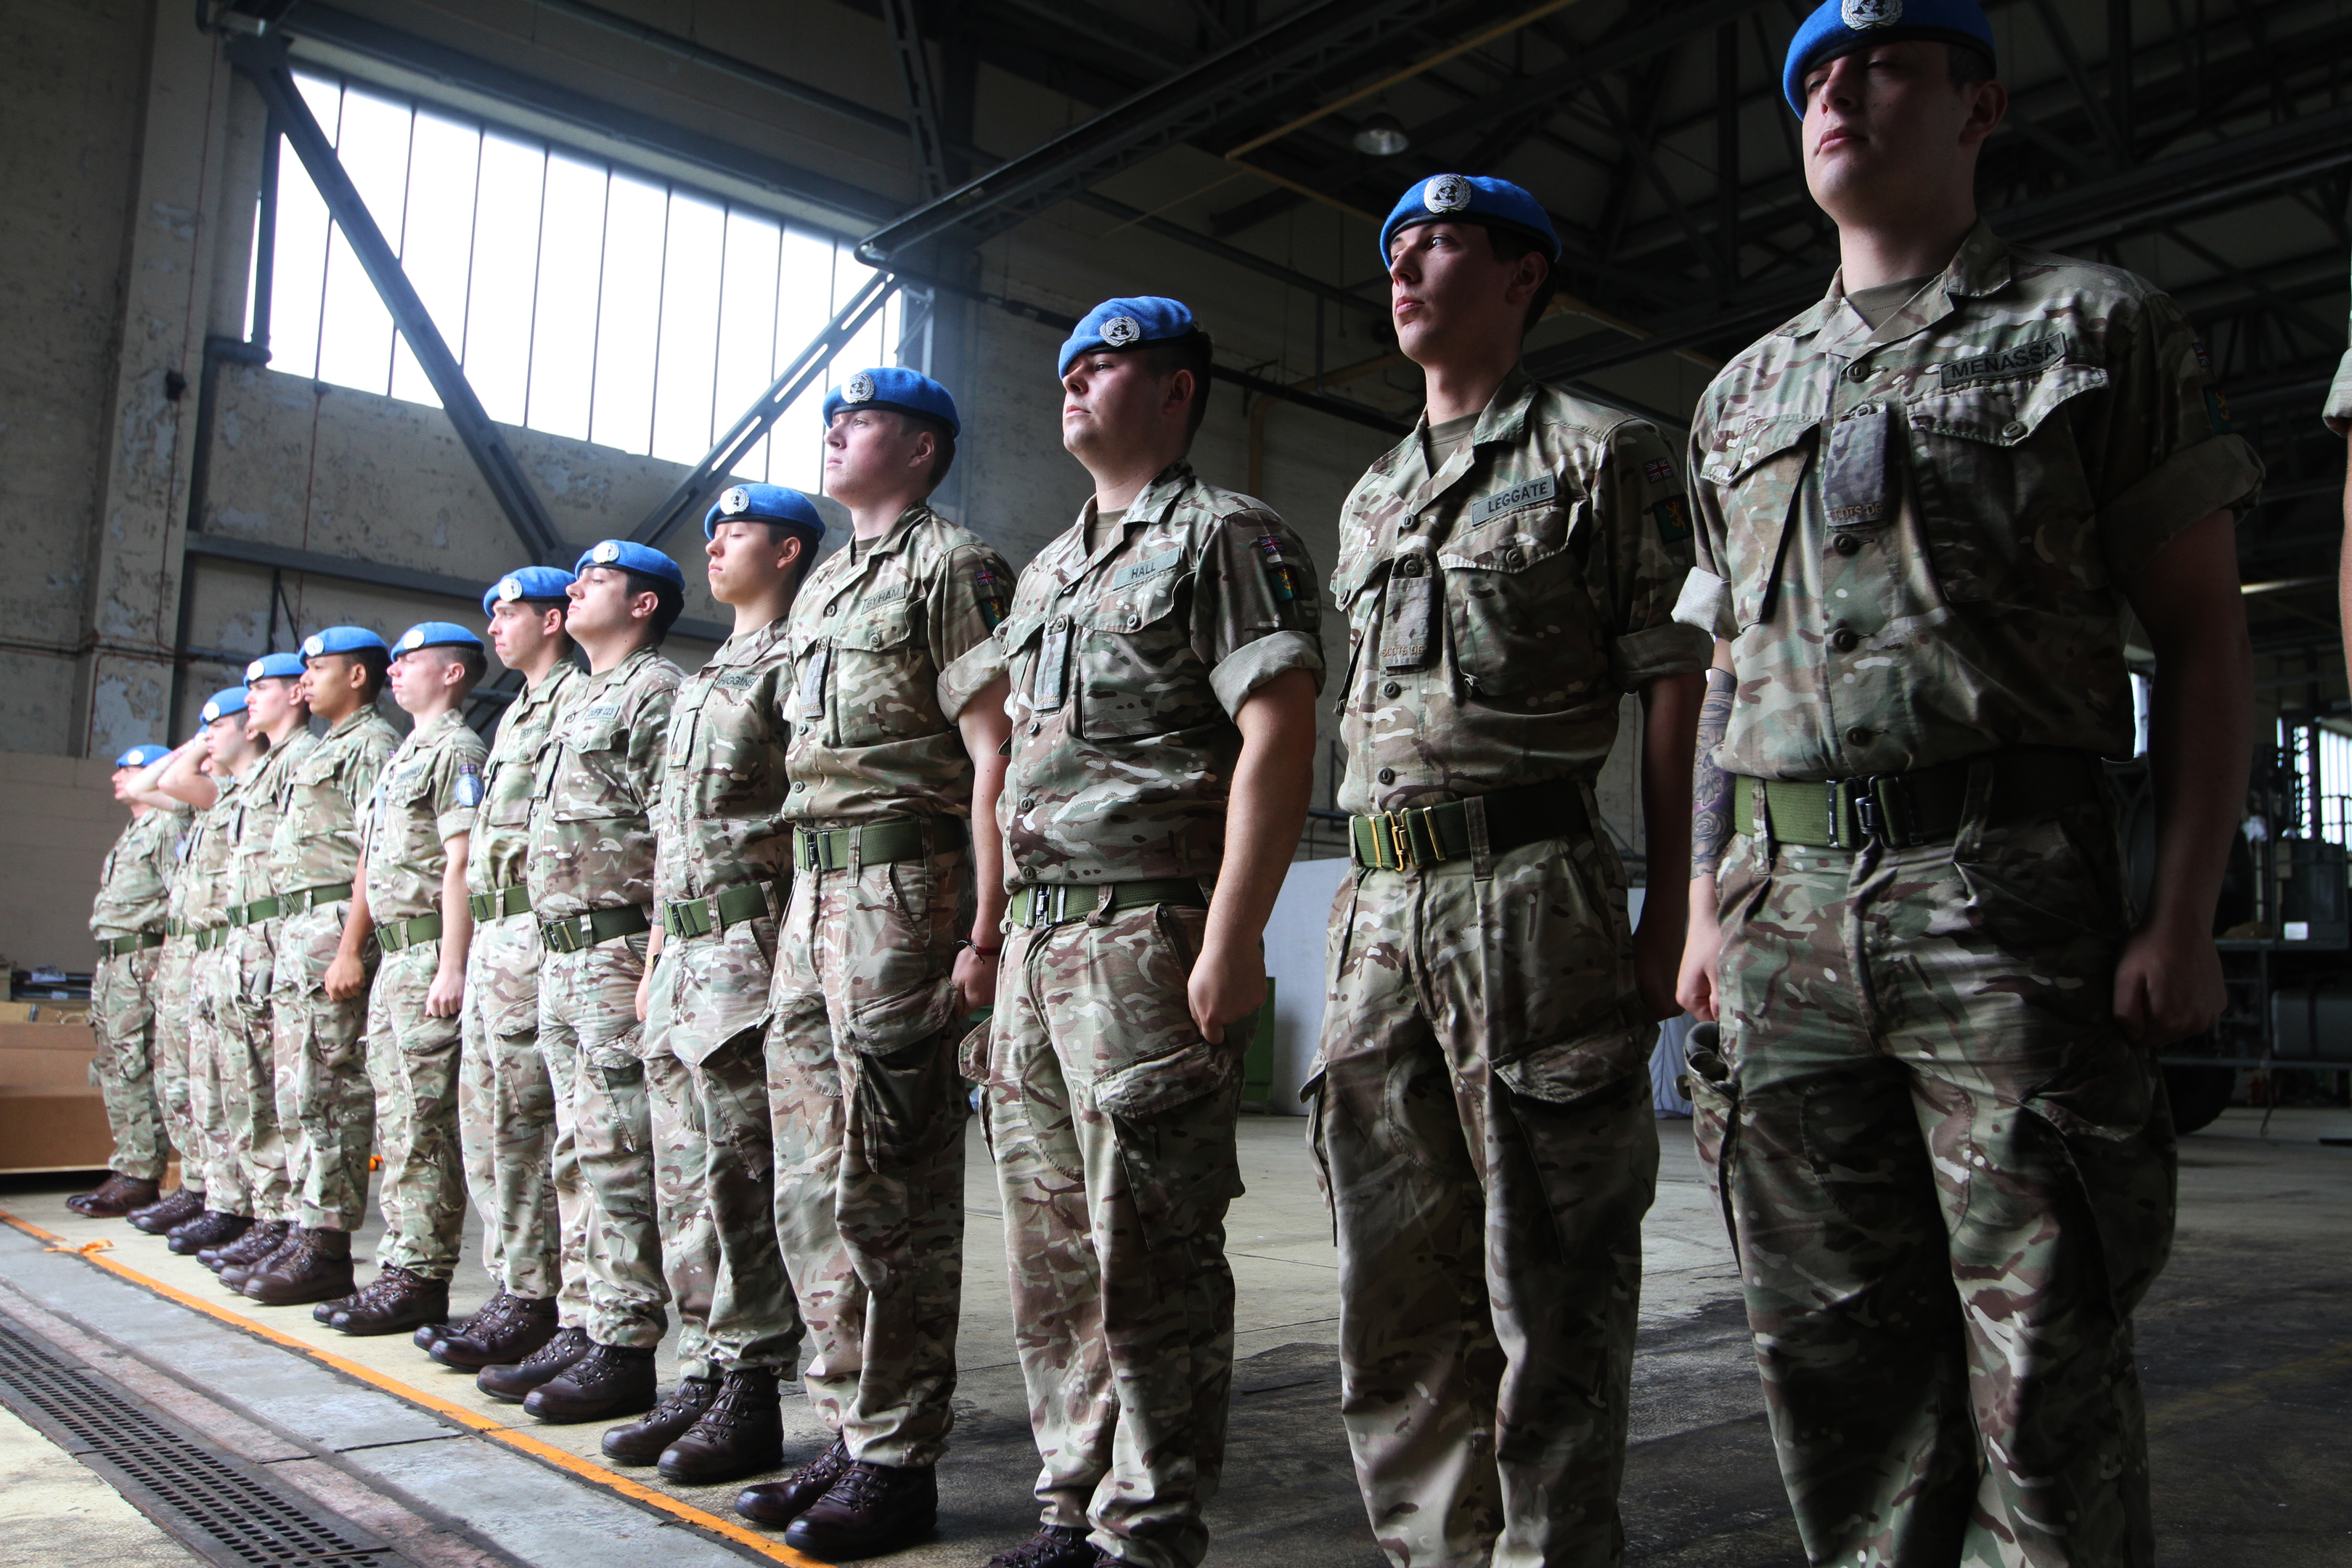 Soldiers leaving the armed forces - such as the Royal Scots Dragoon Guards in Leuchars - should be able to transfer to Police Scotland more easily, says an MSP.